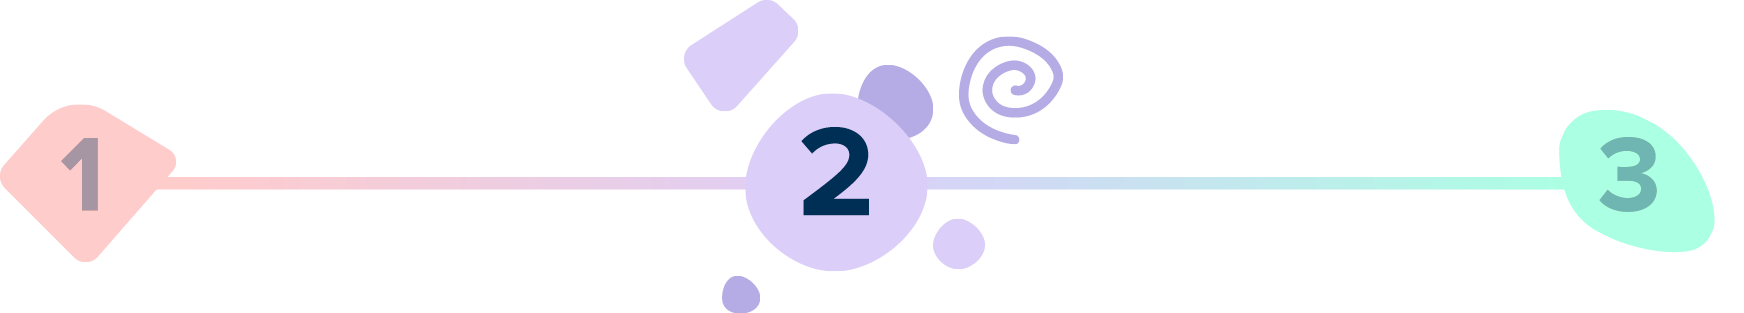 A line with numbers 1, 2, 3. Number 2 is larger with purple shapes around it.